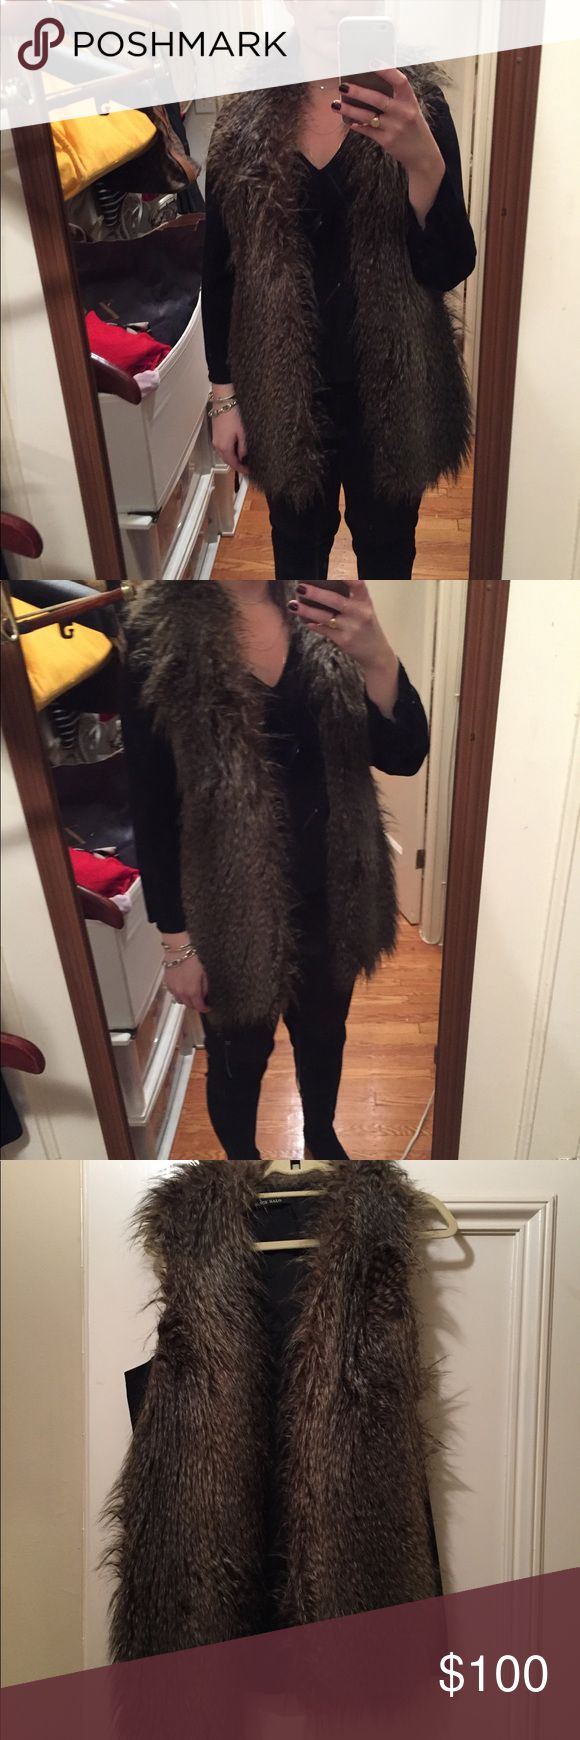 Black Halo Faux Fur Vest This vest is great! The longer length makes it slimming and warm. Plain back also gives a slimming effect so you don't look like a furry bear! Great color that can read brown or grey depending on what you paid it with. Black Halo Other